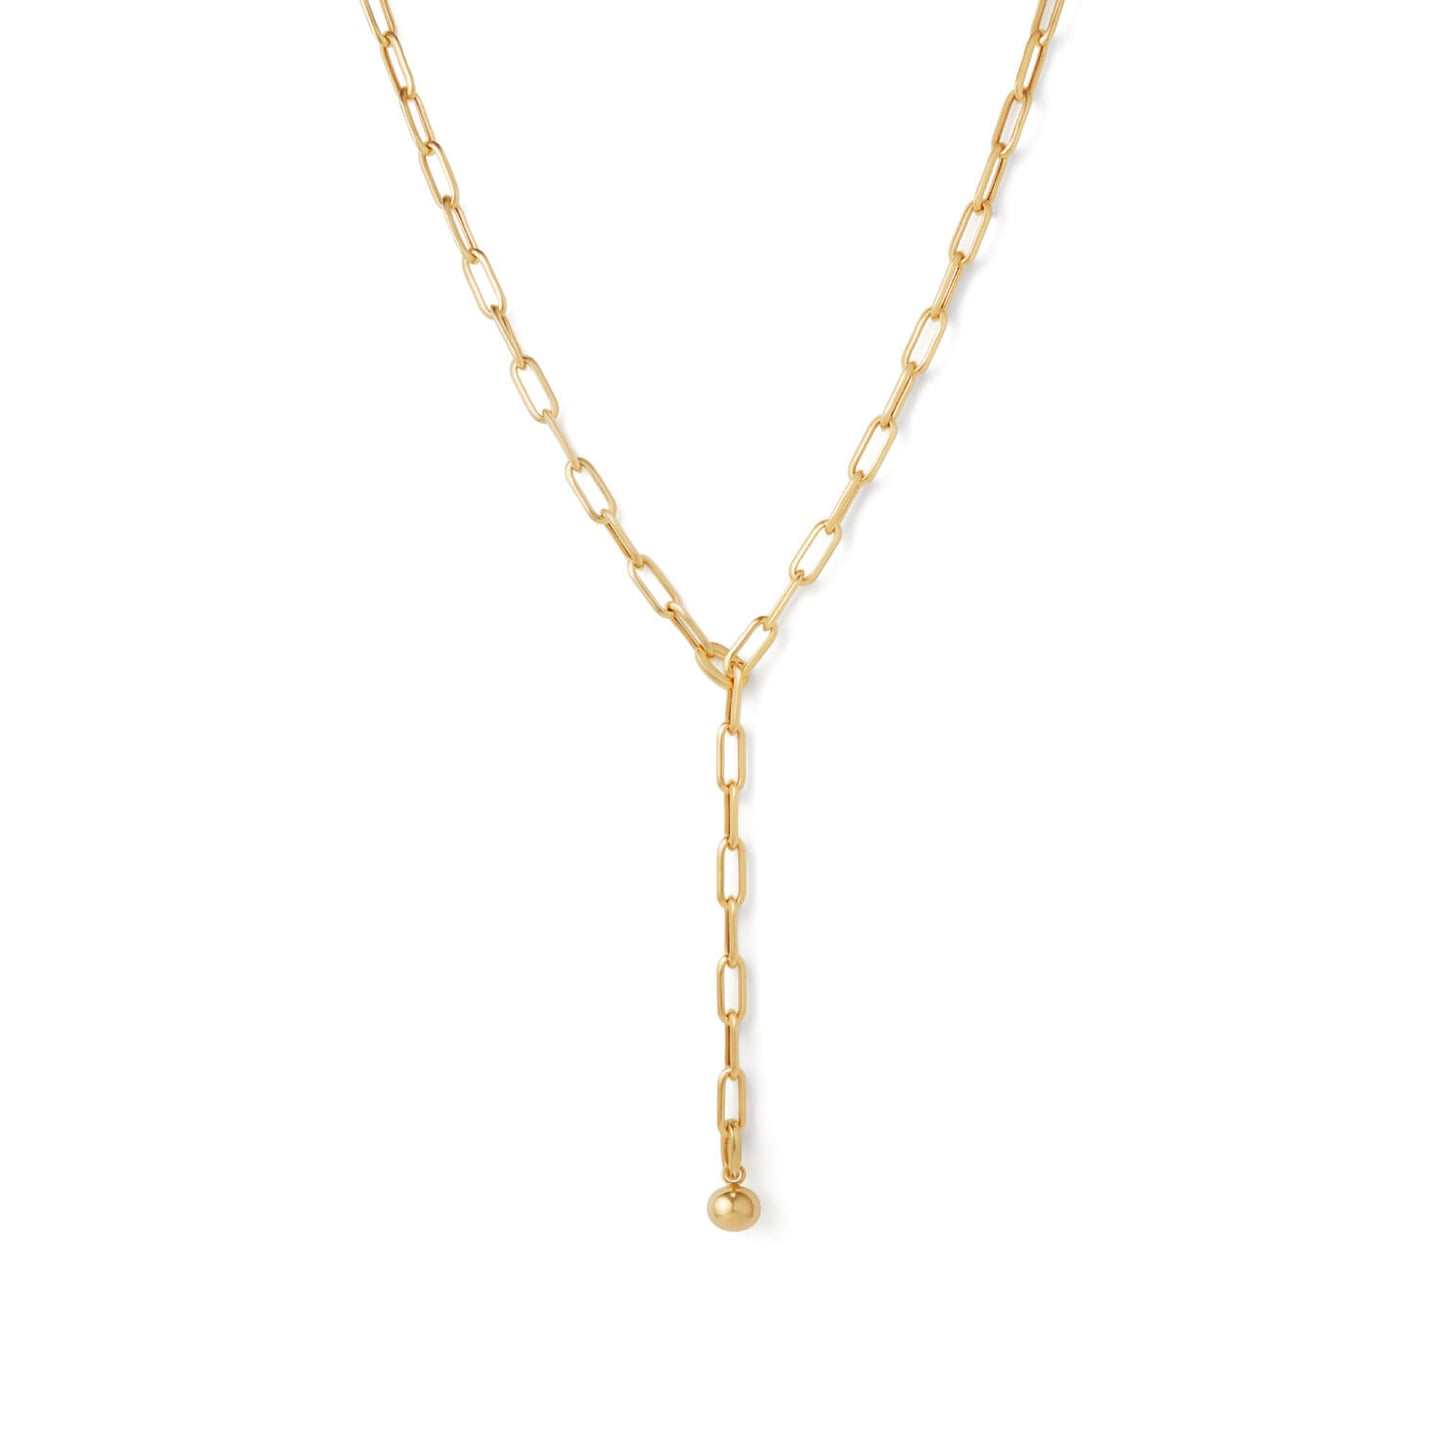 Gold Curator Link Necklace With Charm | 18kt Gold Vermeil | Motley x Estelle Dévé | Product Shot 1